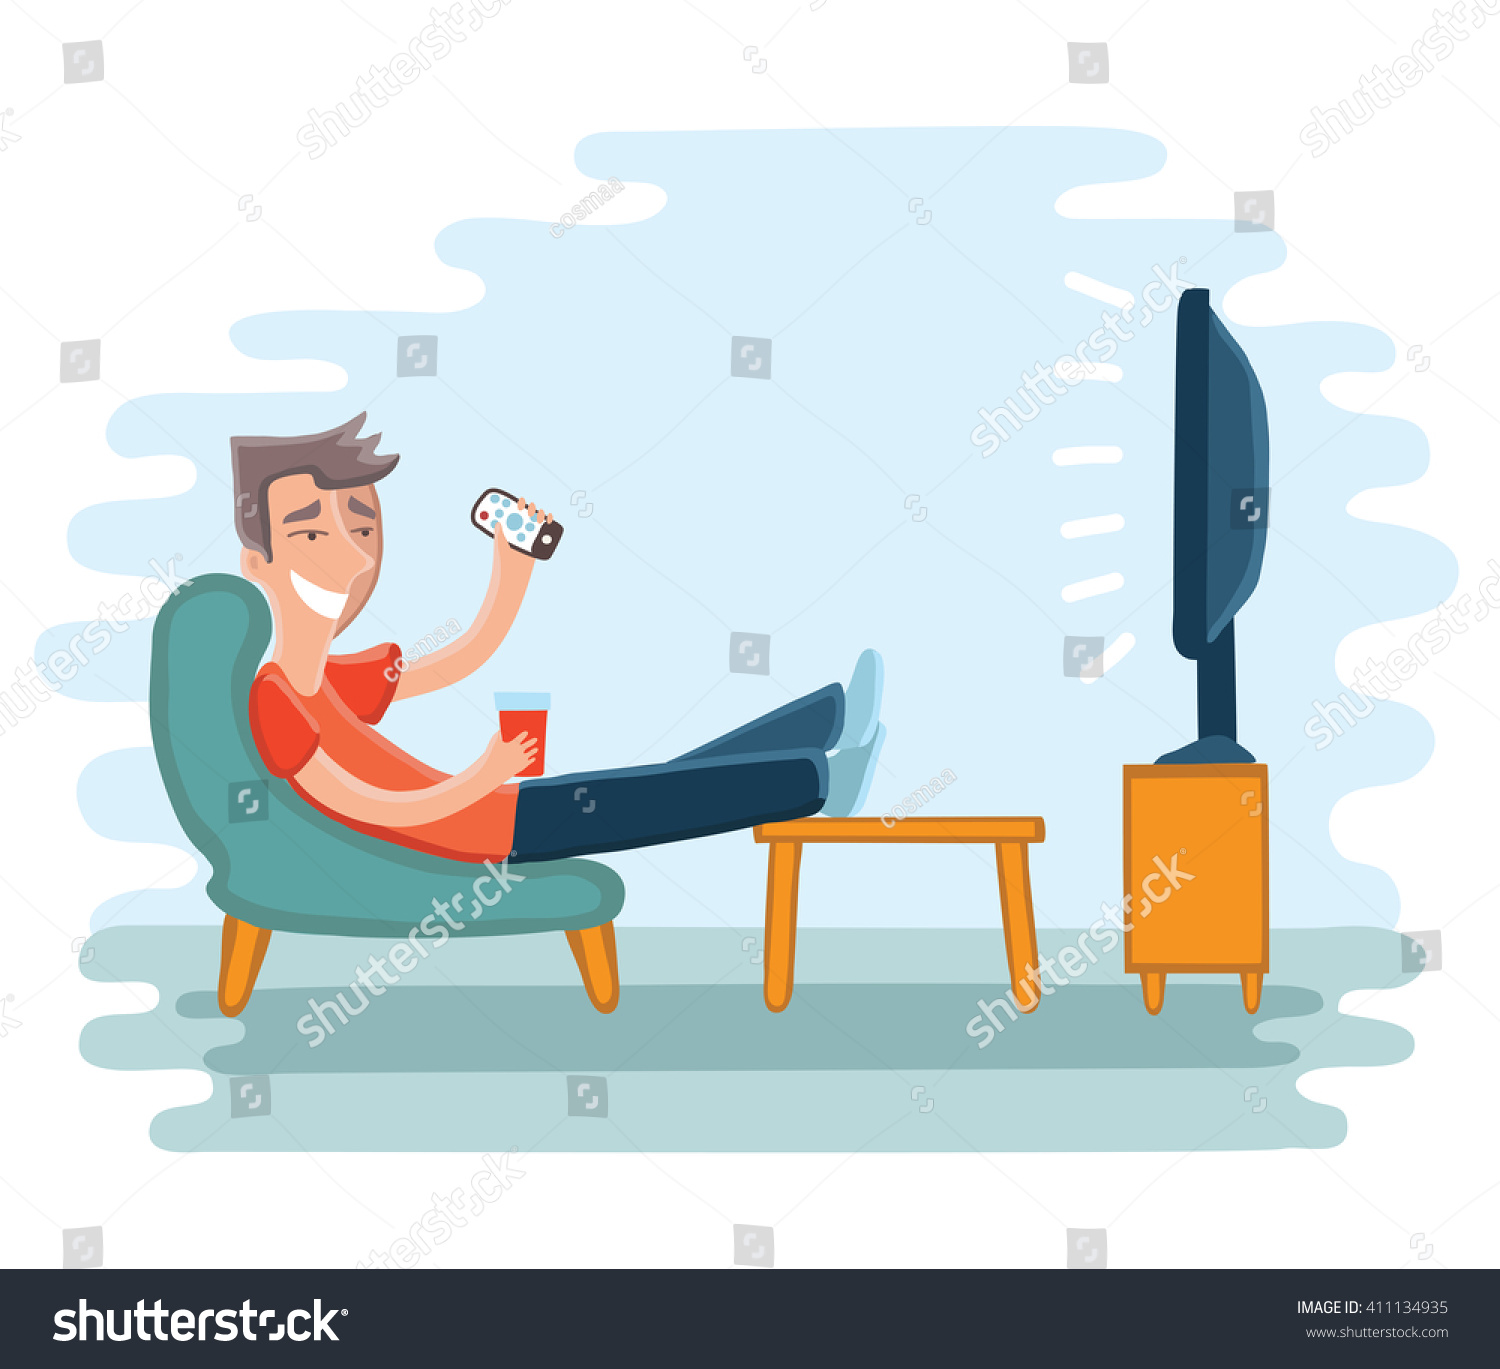 vector illustration man watching television on stock vector 411134935 shutterstock. Black Bedroom Furniture Sets. Home Design Ideas